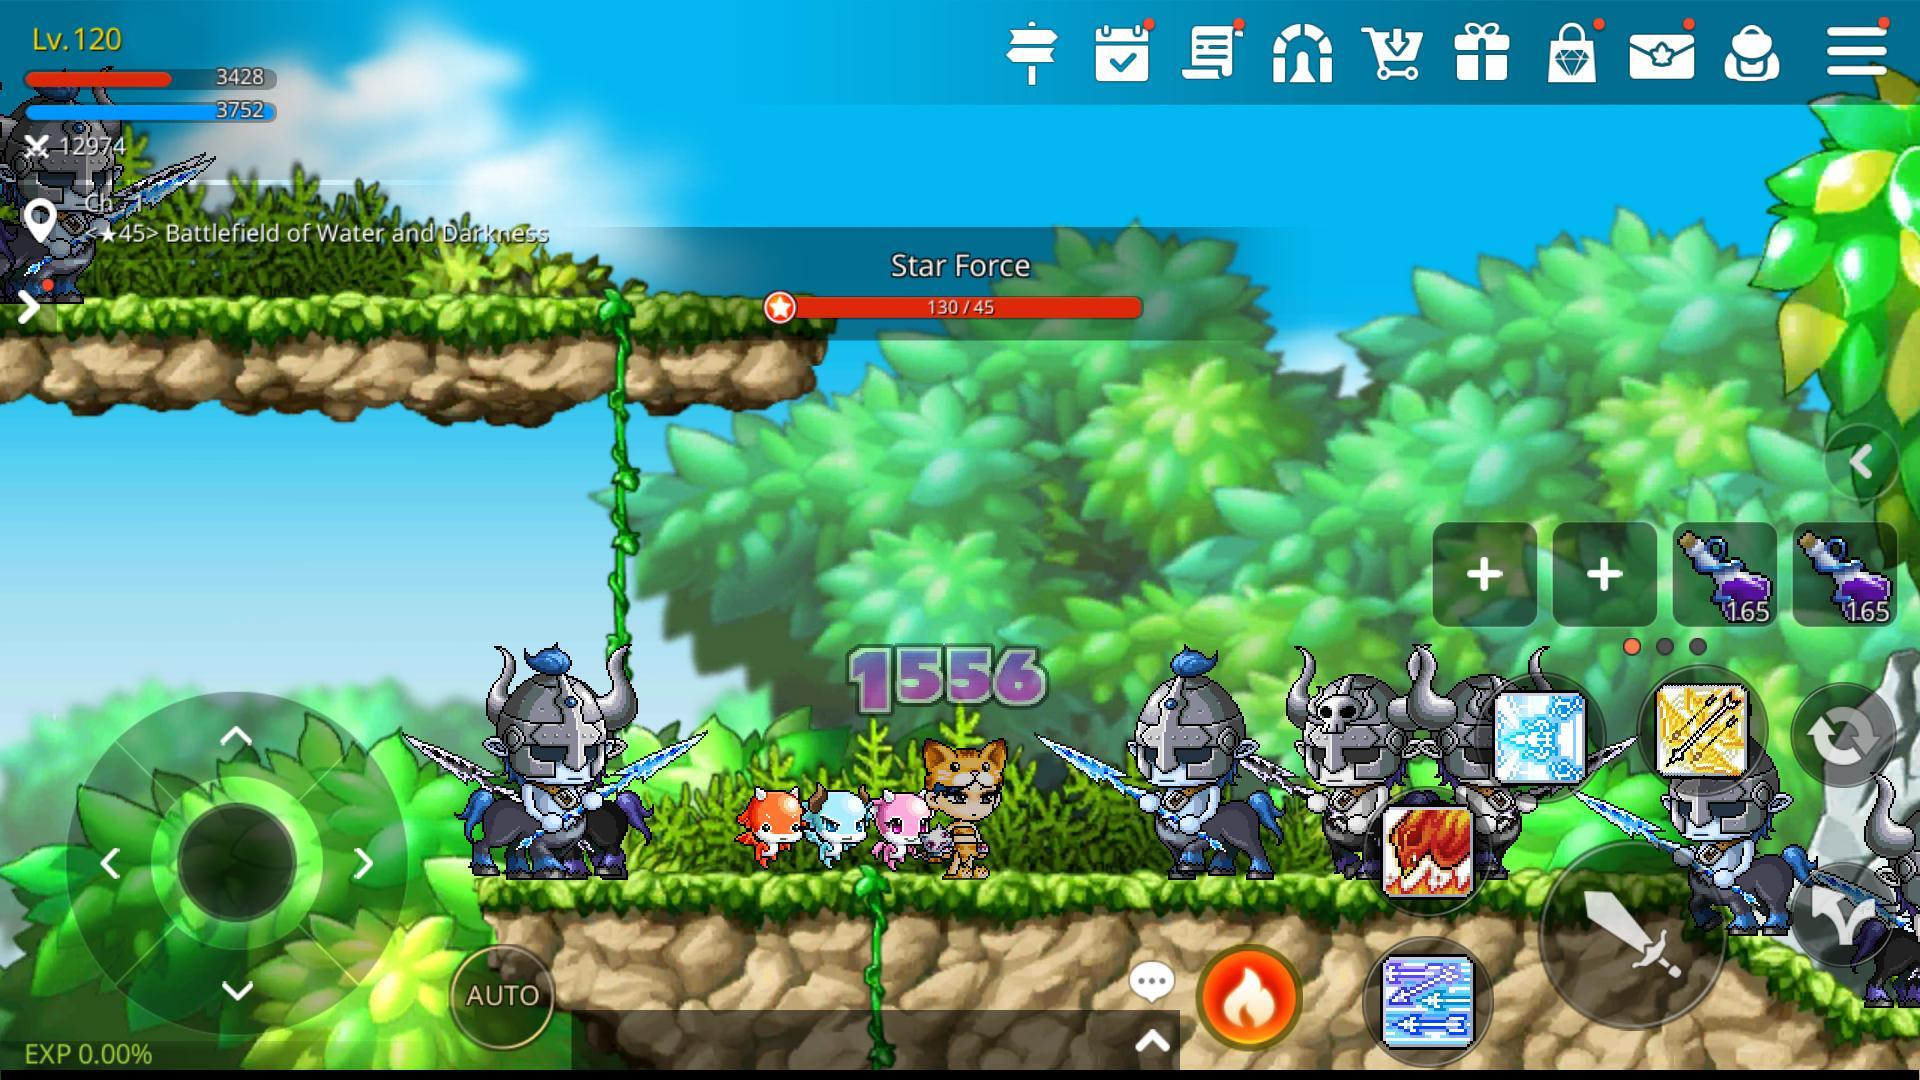 Image result for maplestory m app store""